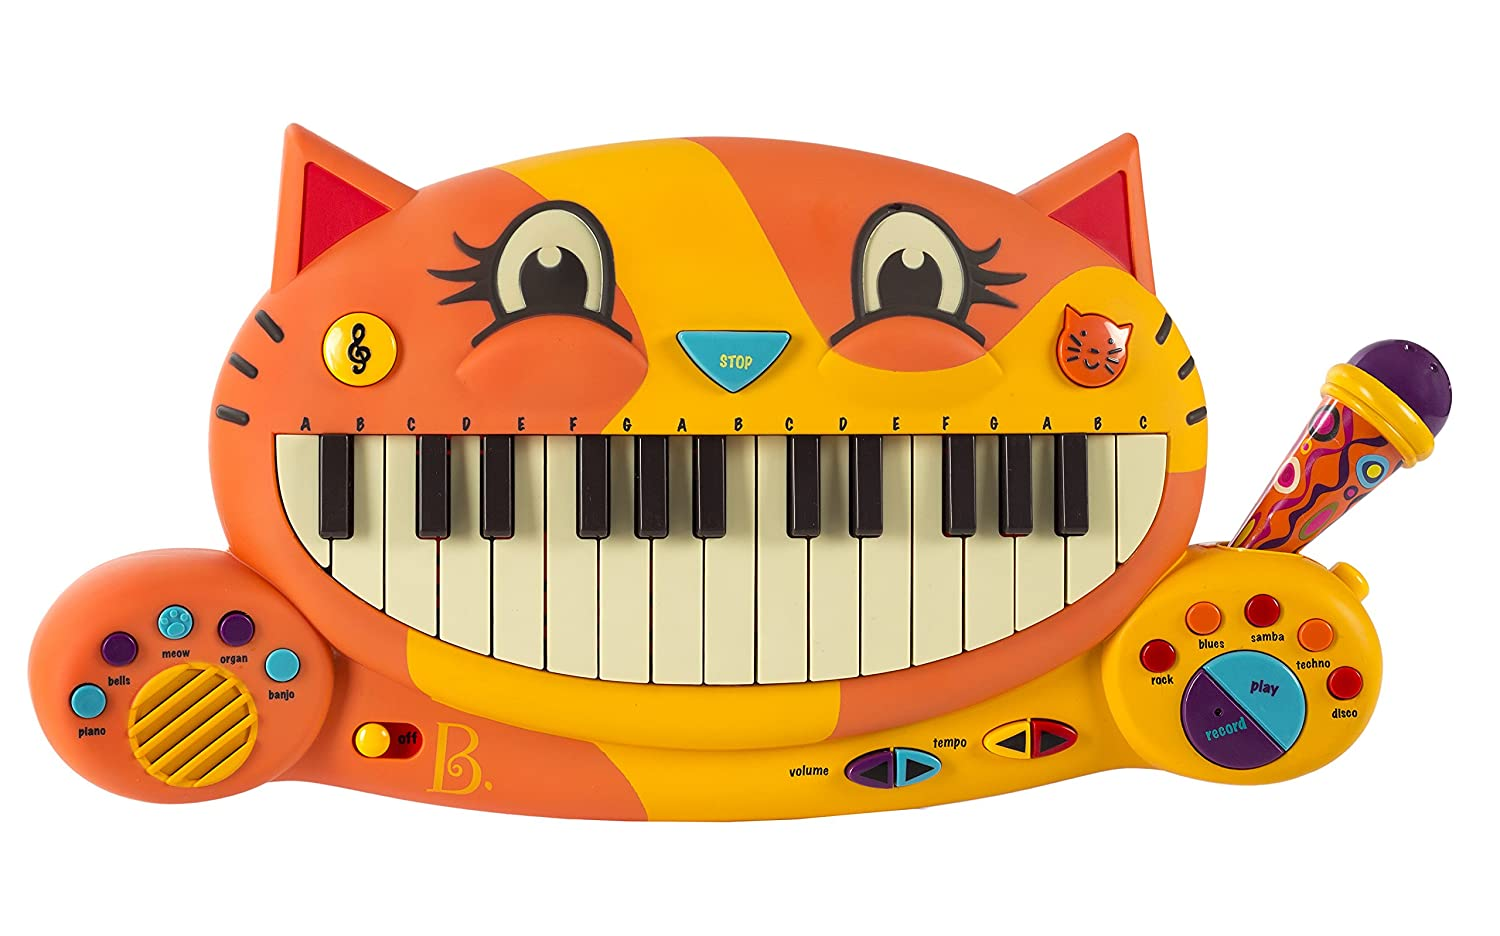 Musical Toys For 1 Year Olds : Awesome musical toys for year olds in